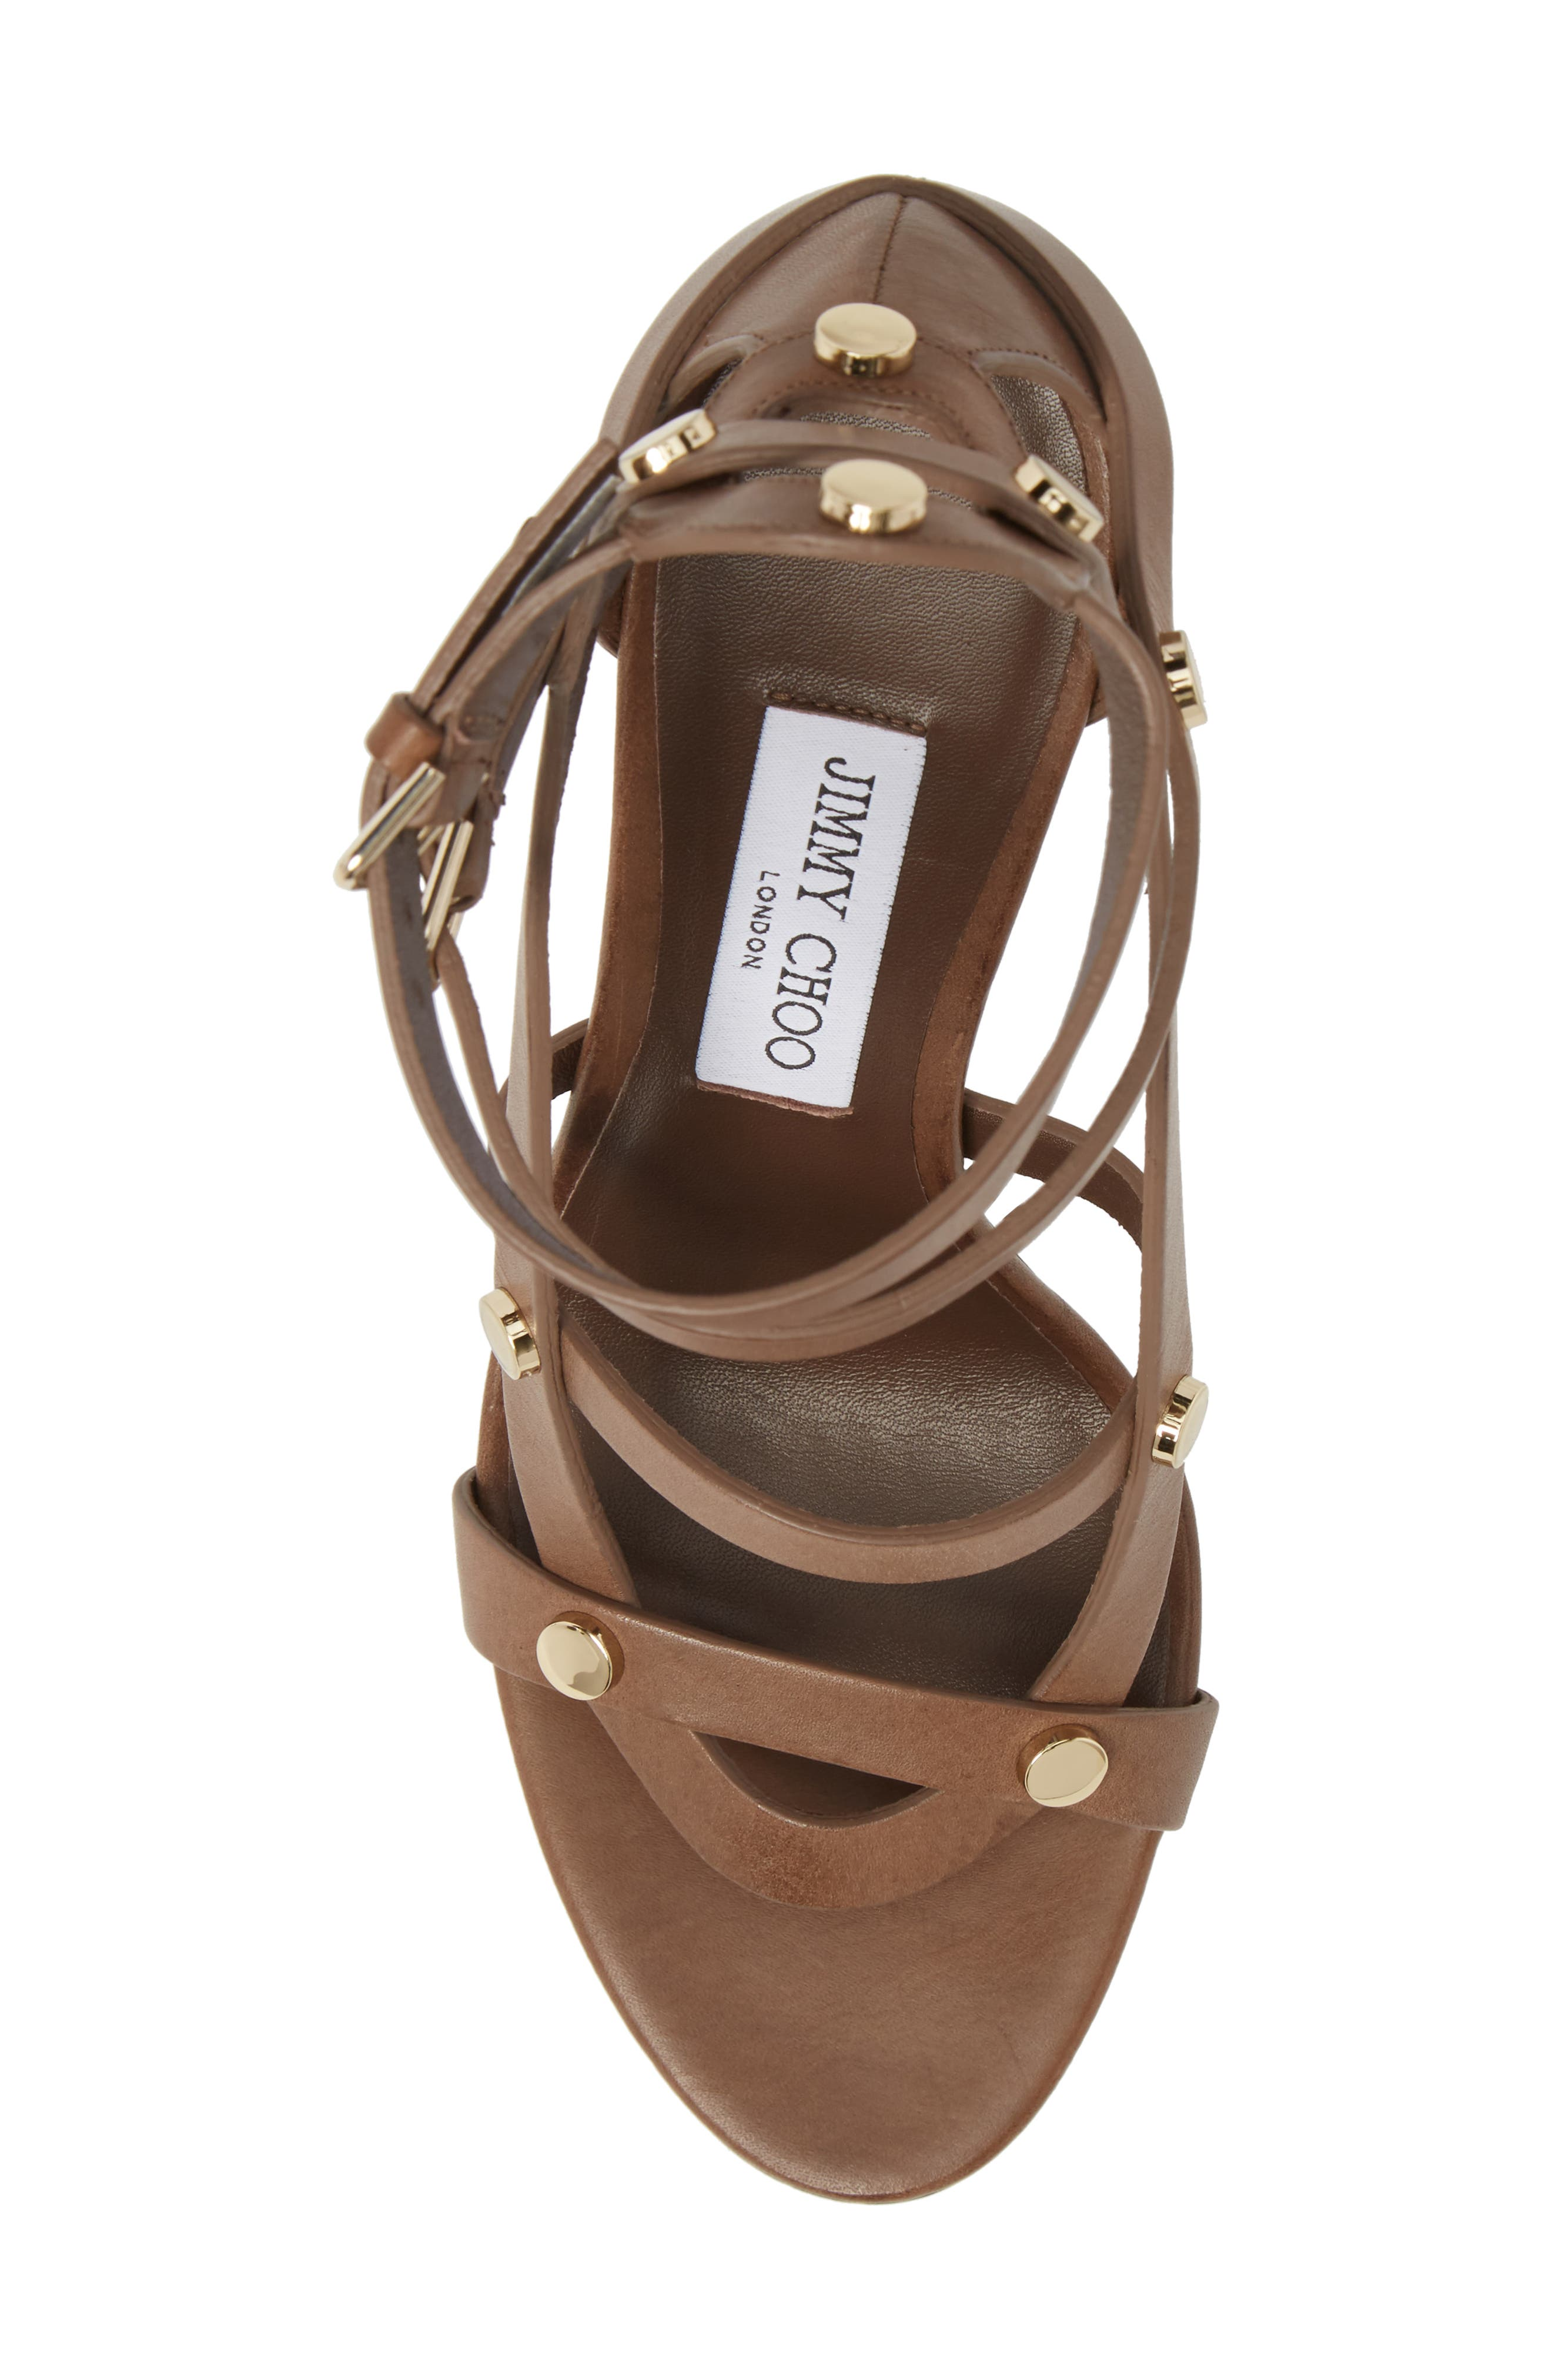 Motoko Studded Cage Sandal,                             Alternate thumbnail 5, color,                             Cacao Brown